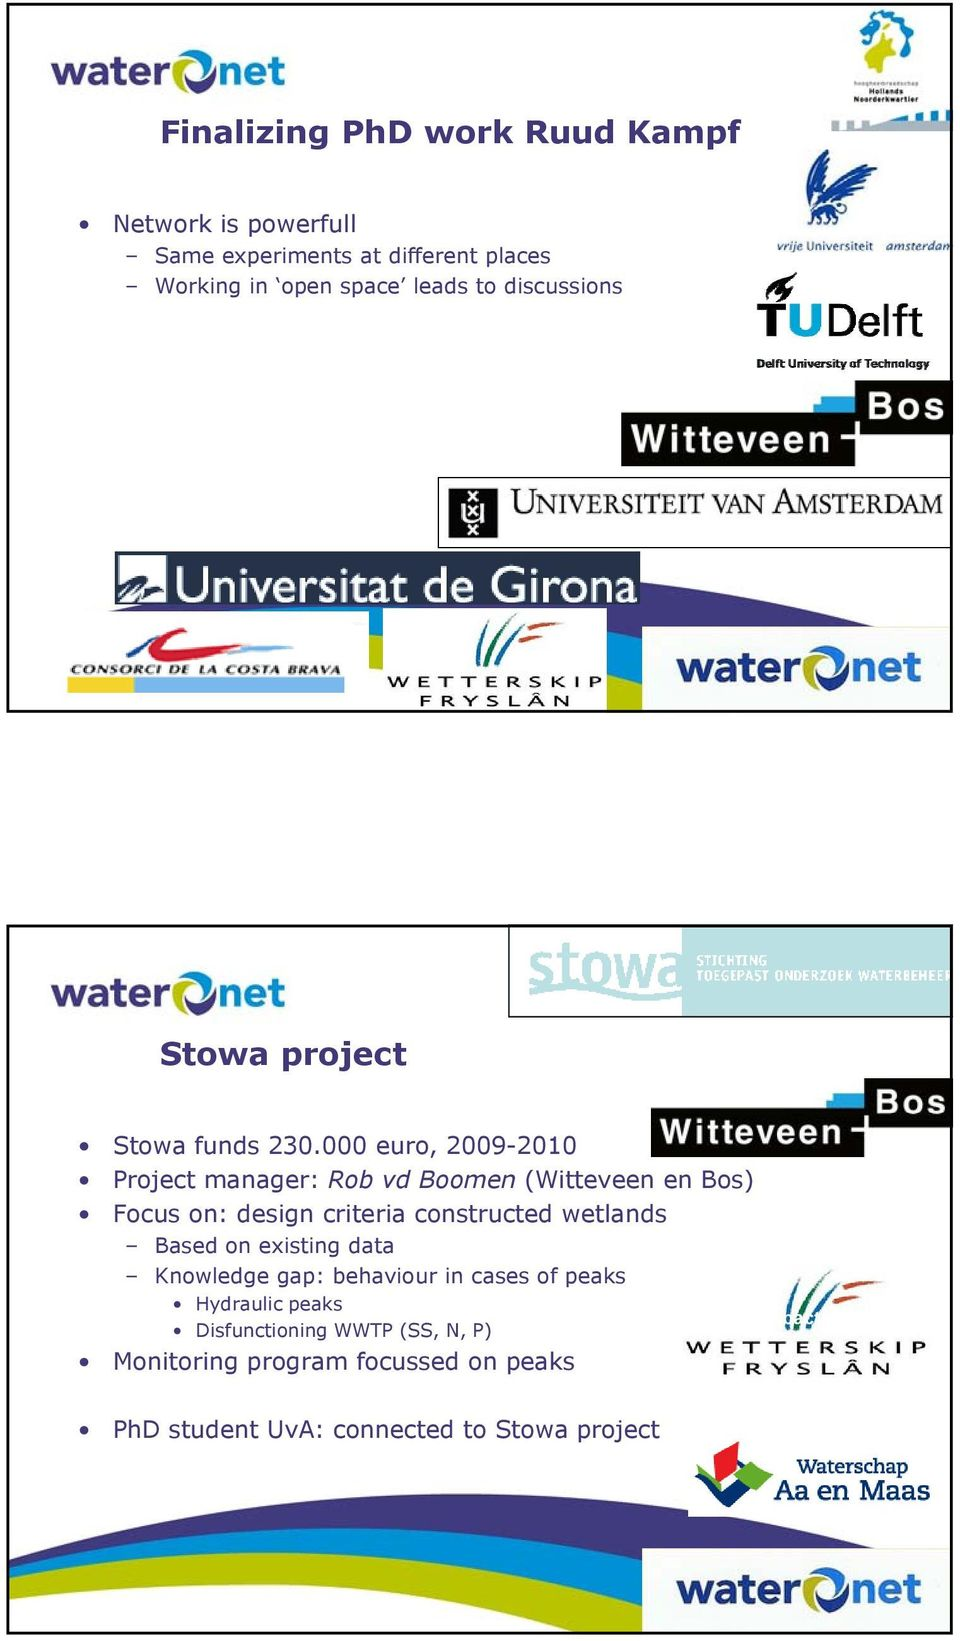 000 euro, 2009-2010 Project manager: Rob vd Boomen (Witteveen en Bos) Focus on: design criteria constructed wetlands Based on